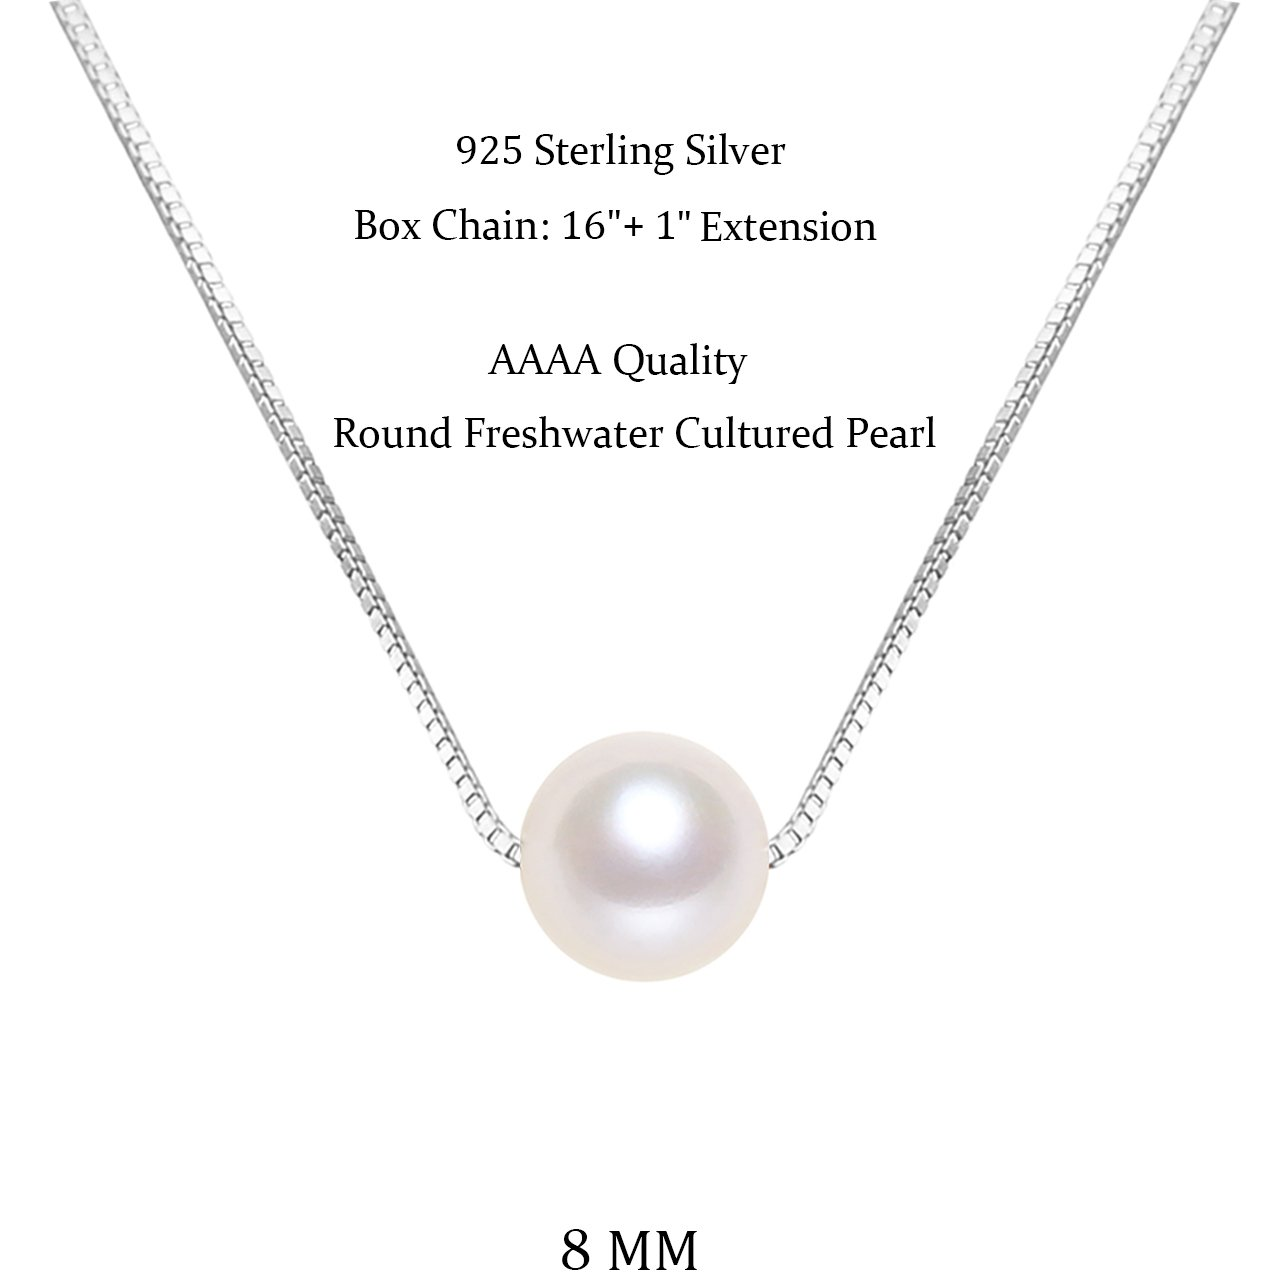 AAAA Quality Single White Round Freshwater Cultured Pearl Sterling Silver Necklace for Women 16 1 inch